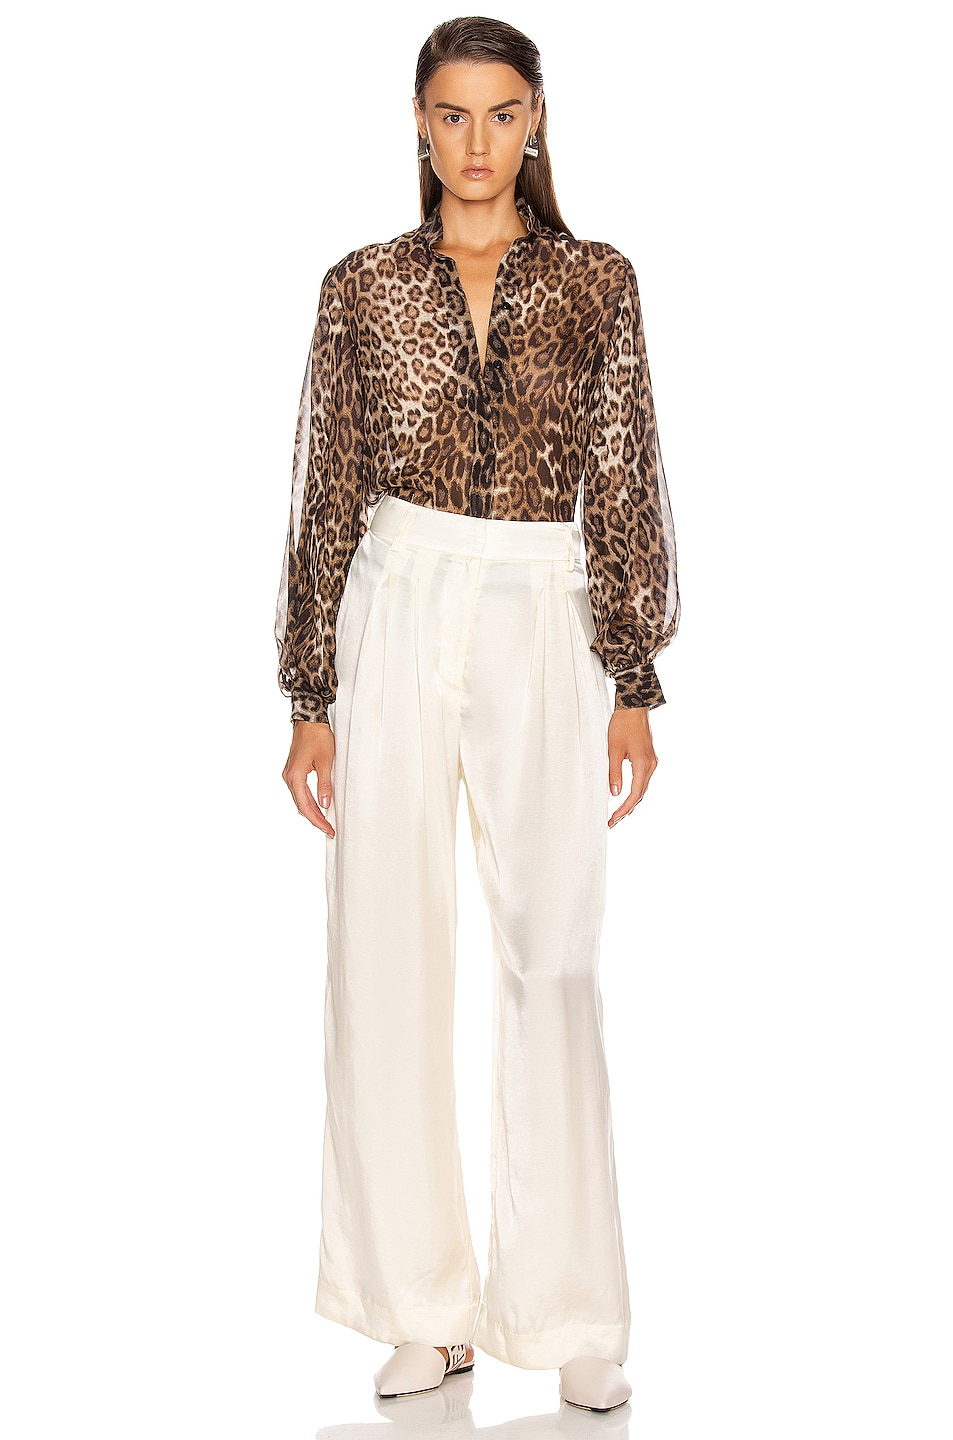 Image 4 of NILI LOTAN Evelyn Blouse in Brown Leopard Print